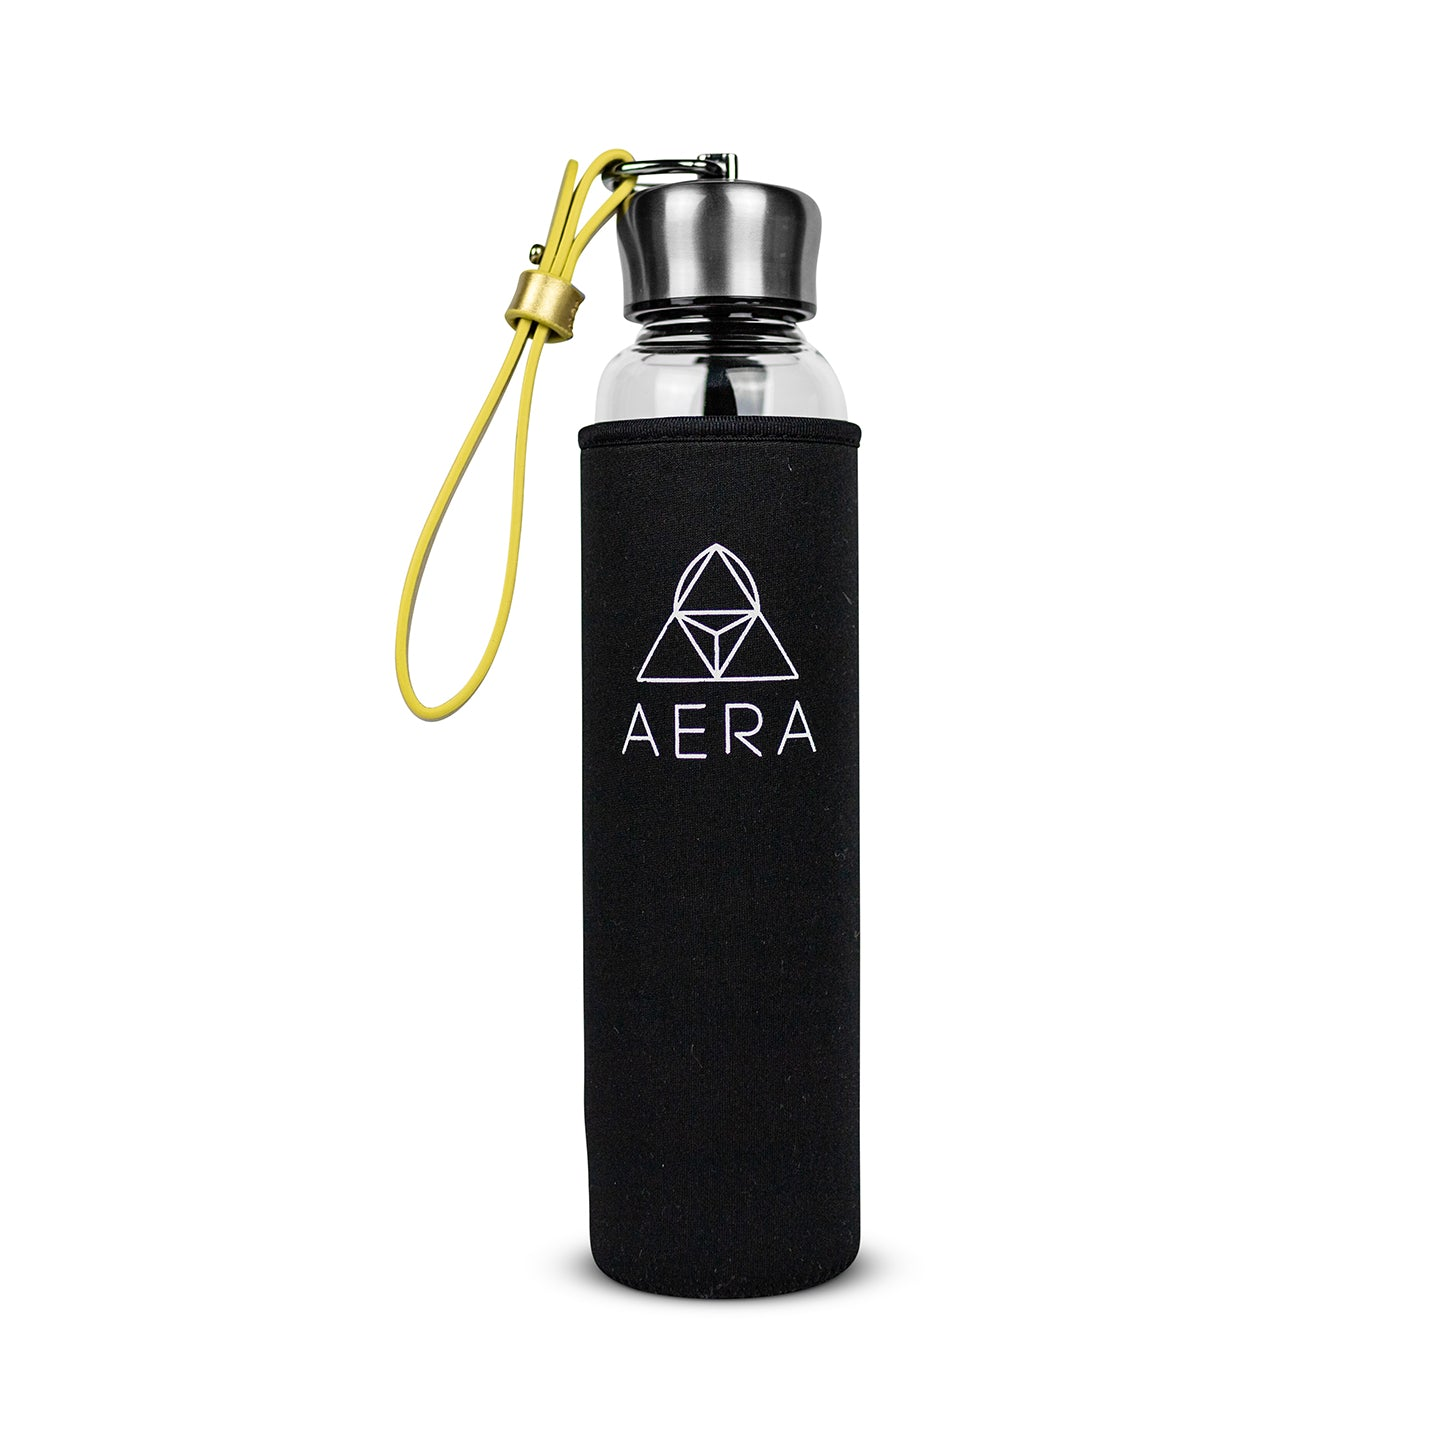 AERA Bottle x Smoky Quartz